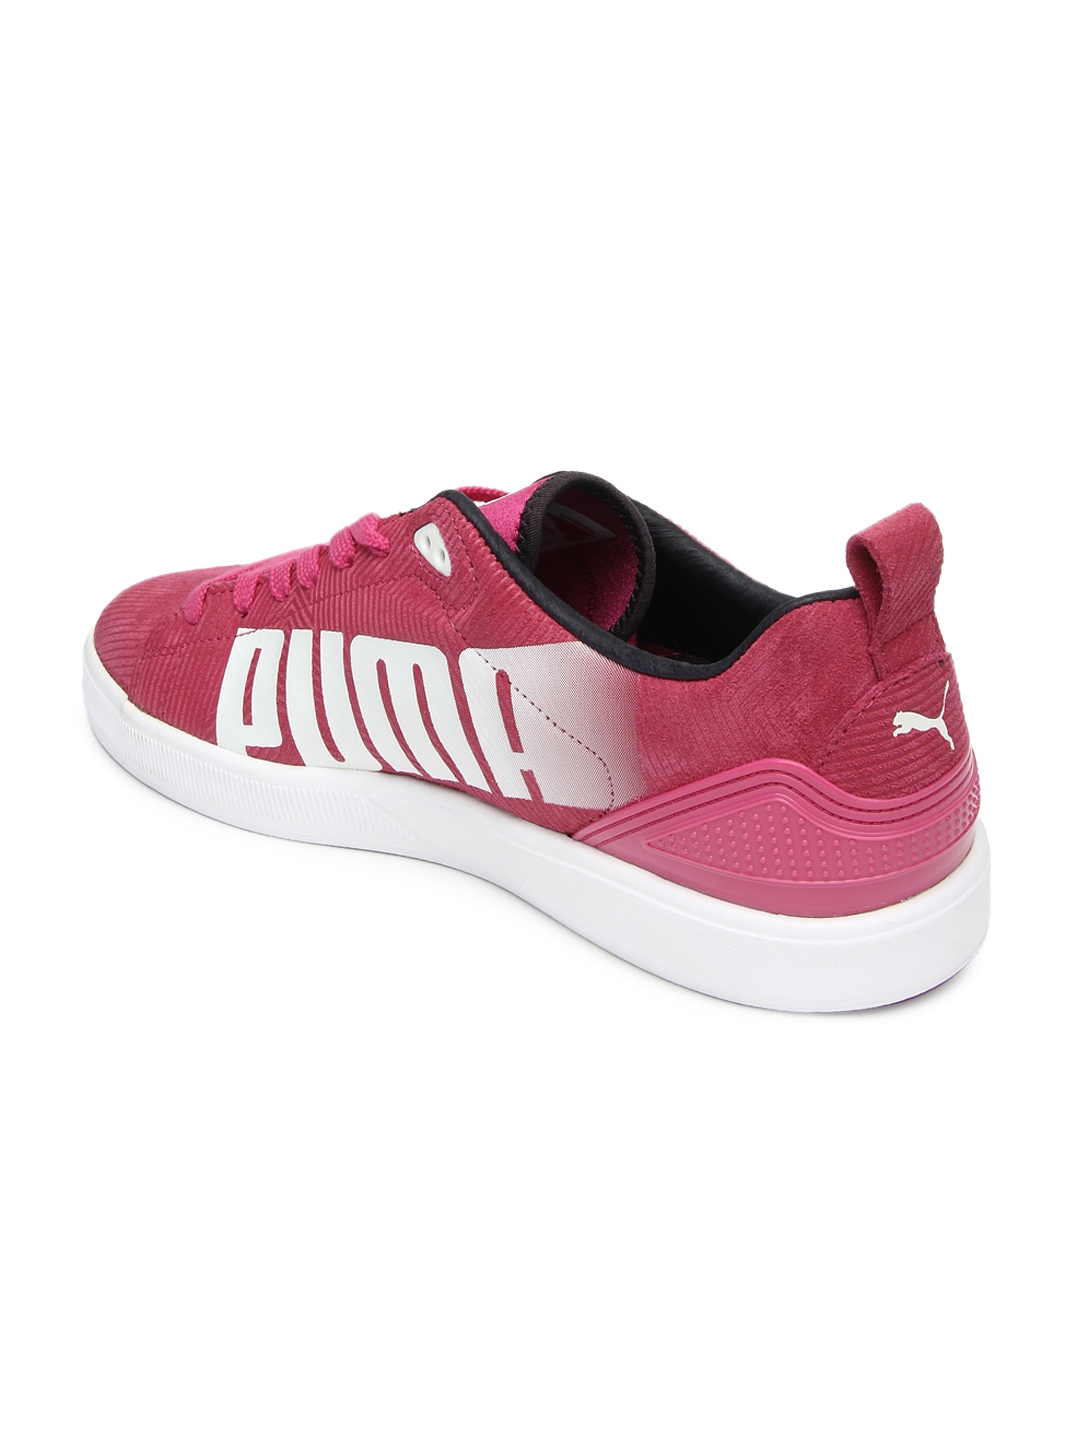 mens pink pumas Sale,up to 64% Discounts